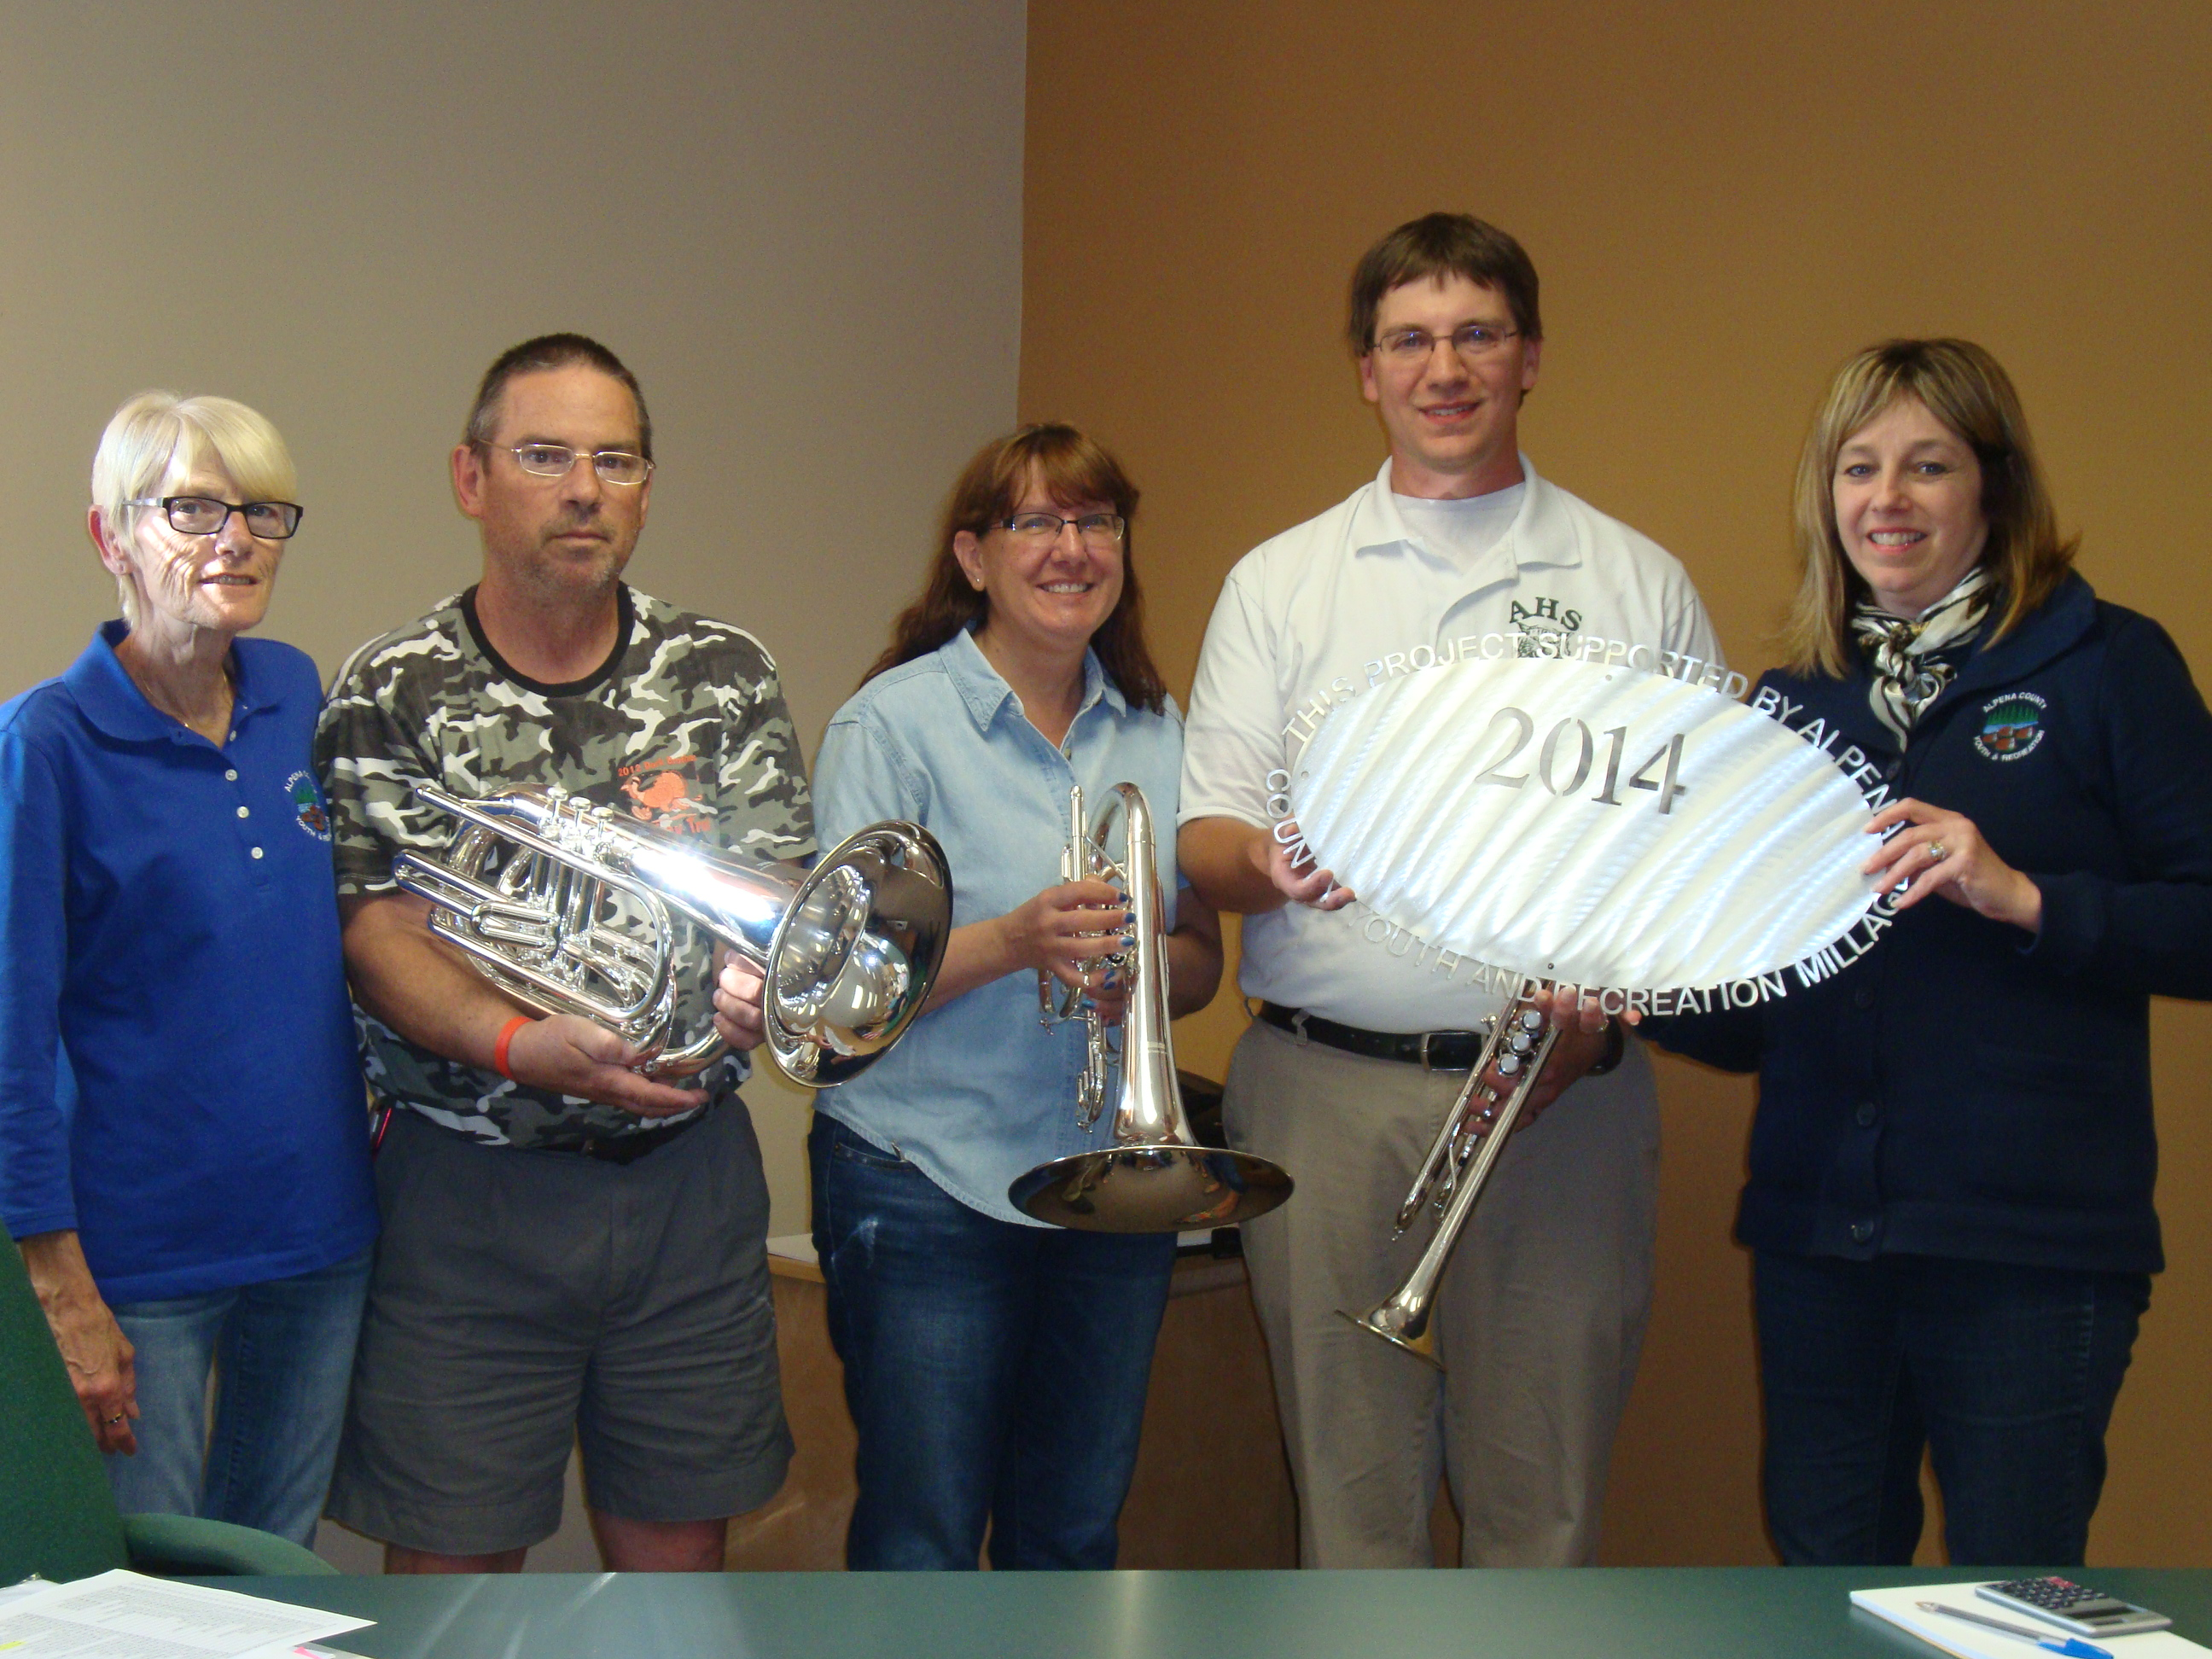 Alpena High School Band Boosters $20,000 Symphony Band uniforms, instruments